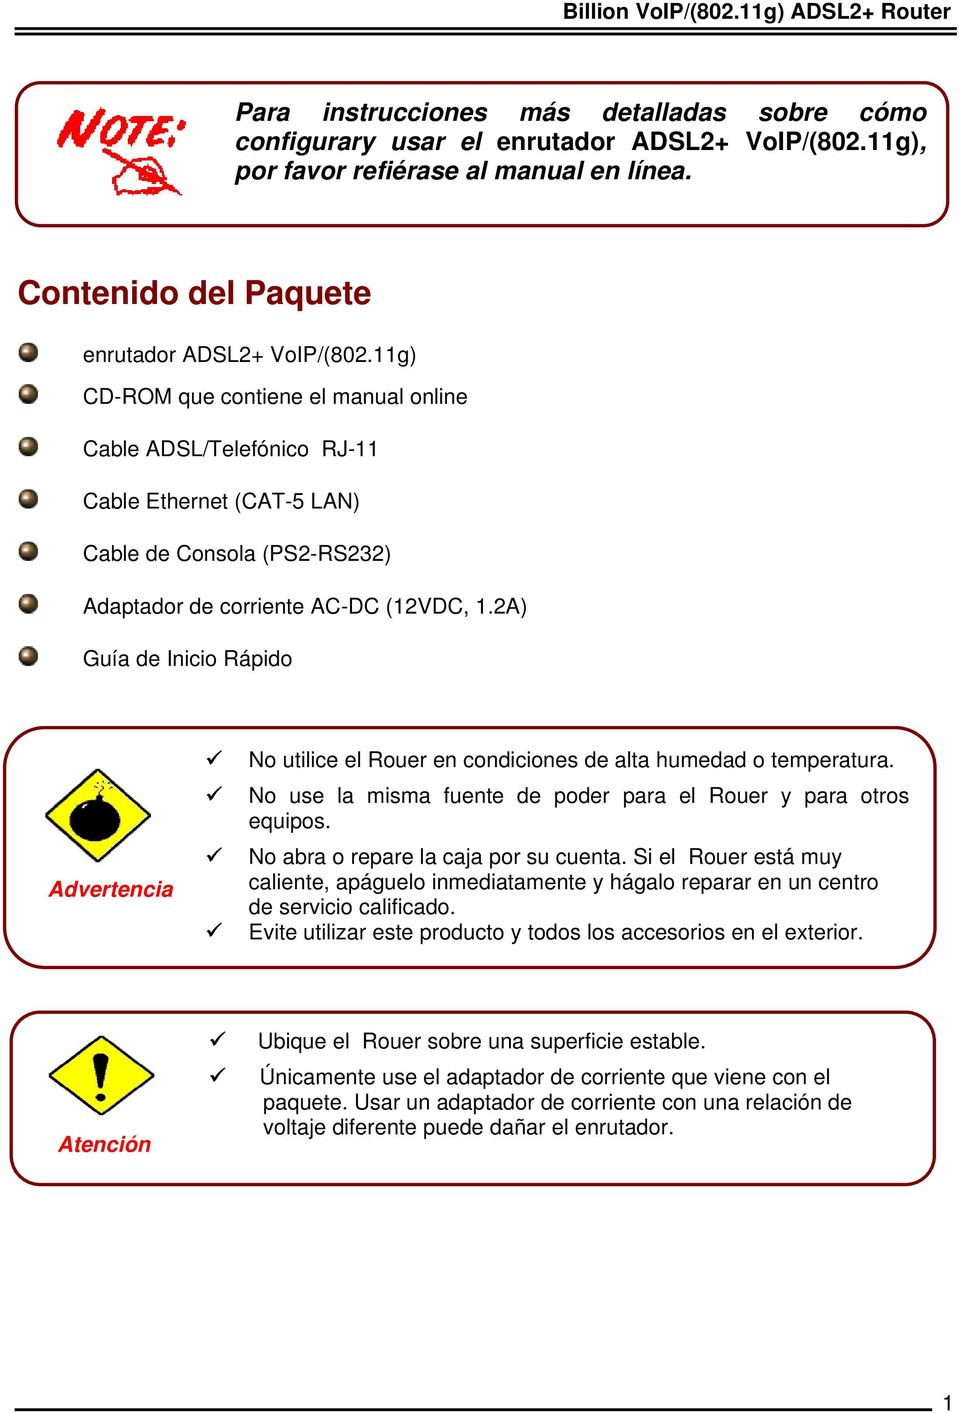 11g) CD-ROM que contiene el manual online Cable ADSL/Telefónico RJ-11 Cable Ethernet (CAT-5 LAN) Cable de Consola (PS2-RS232) Adaptador de corriente AC-DC (12VDC, 1.